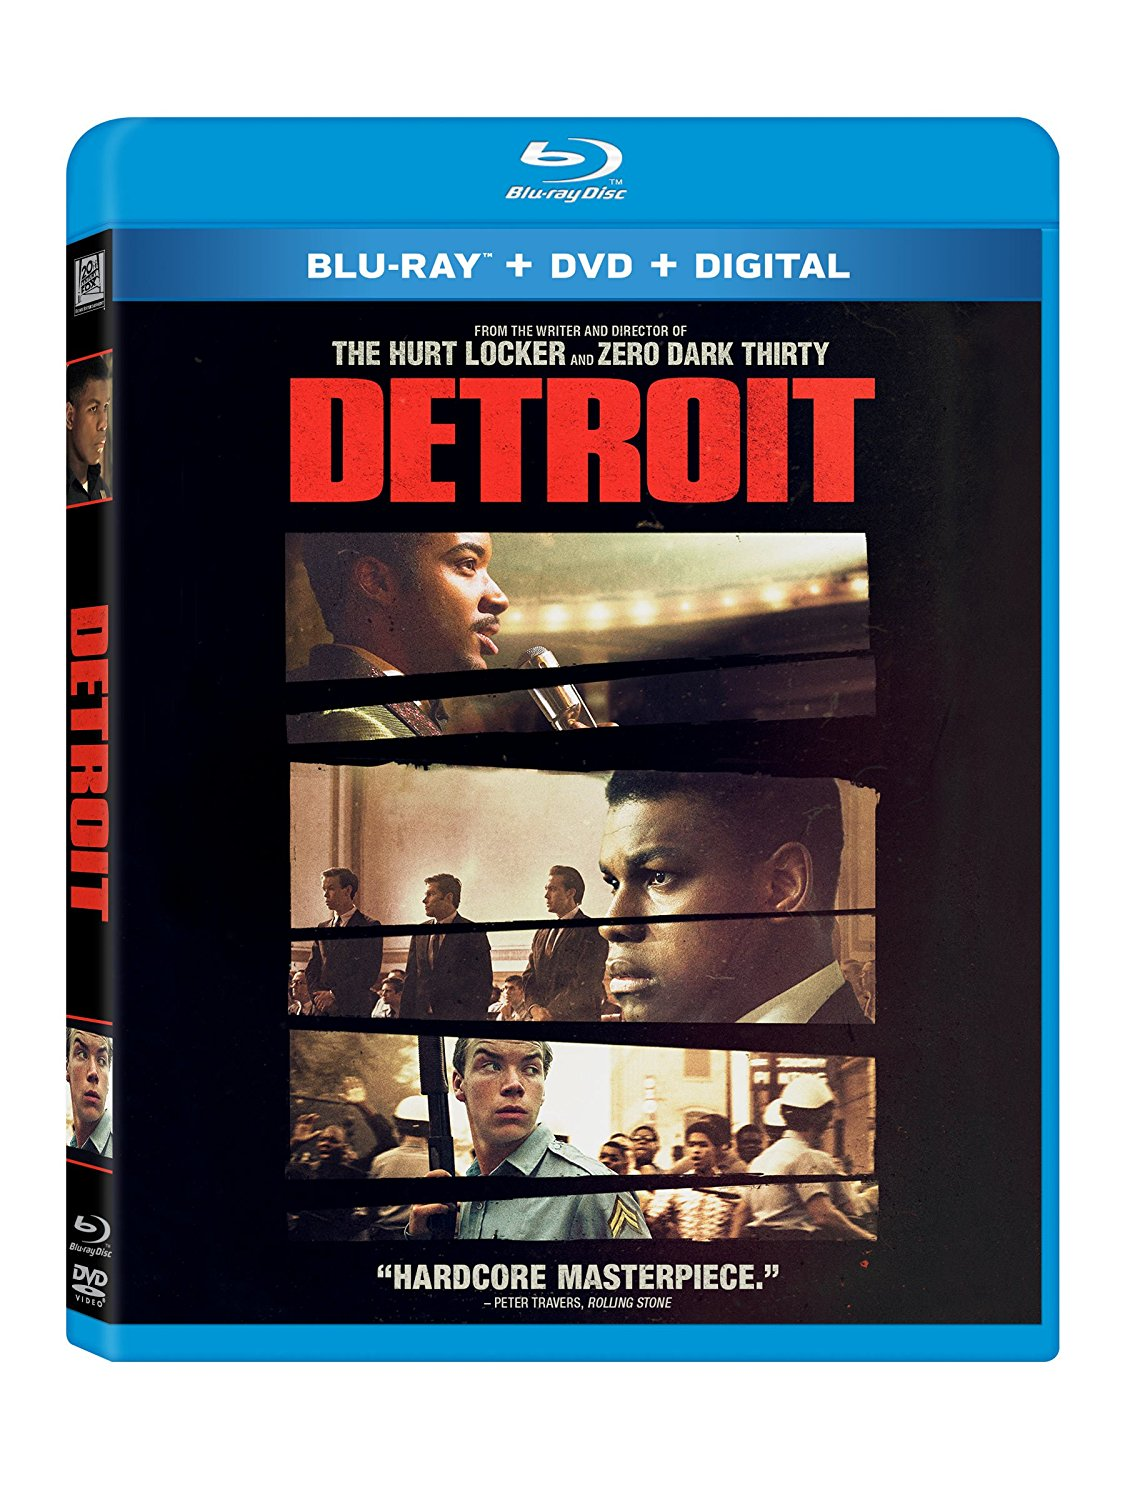 New On DVD And Blu-ray: DETROIT (2017)